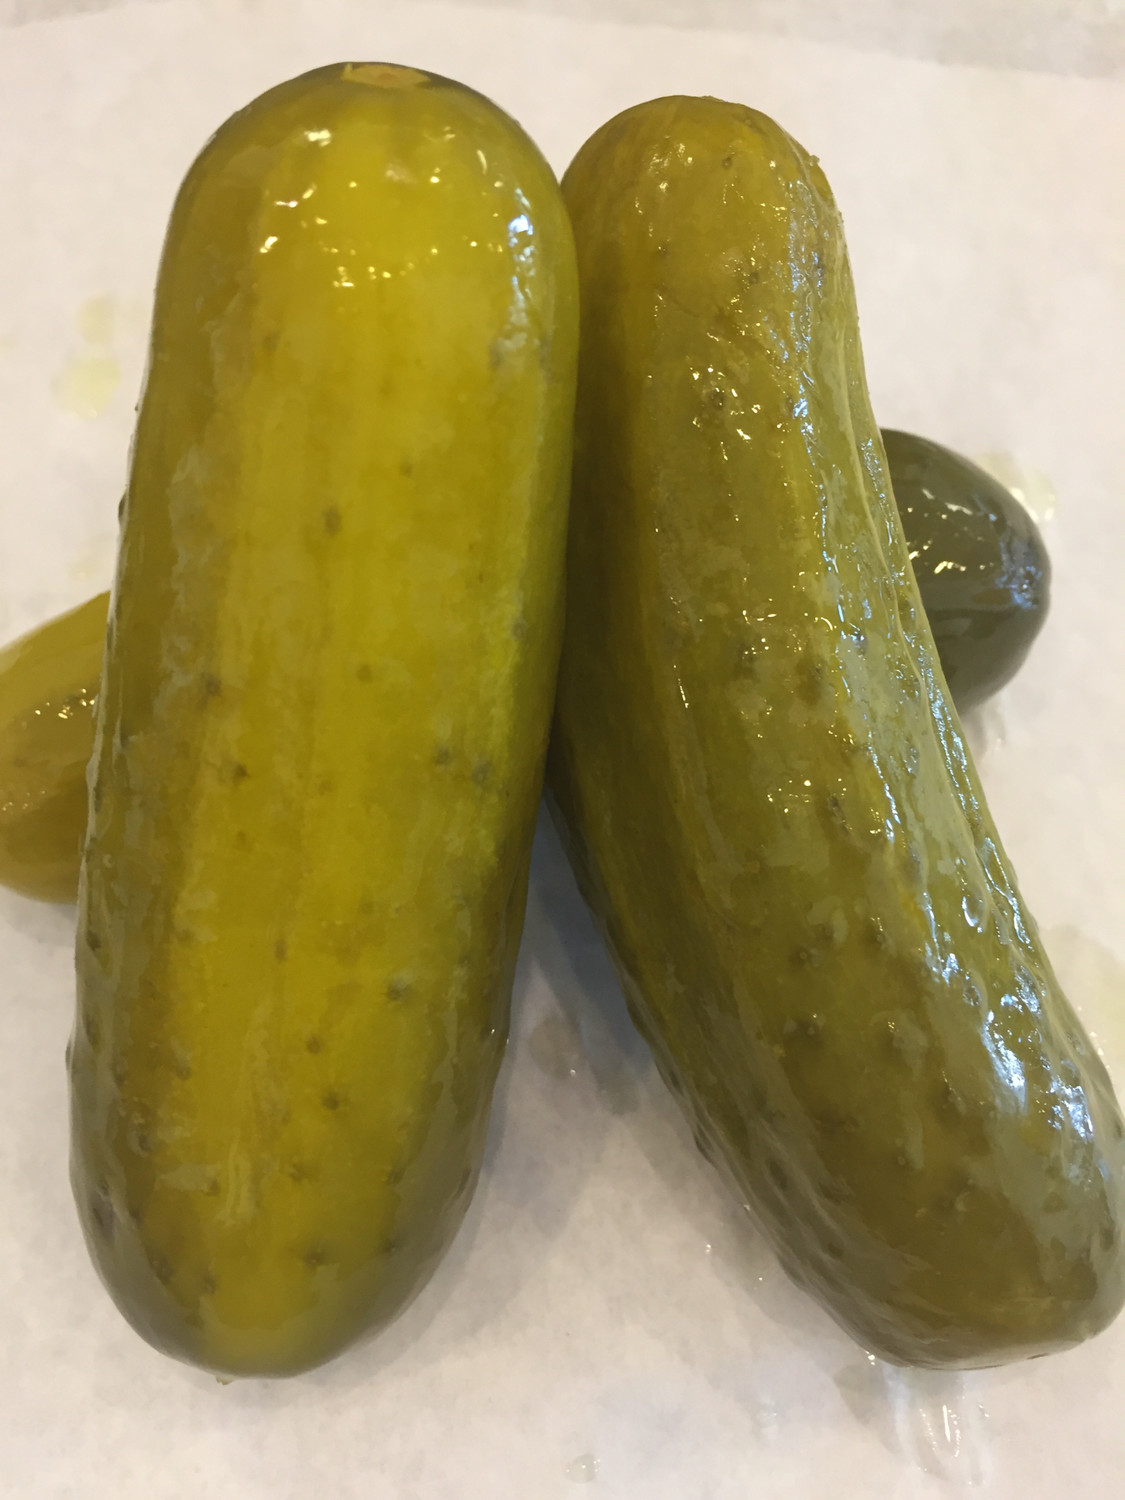 Whole Pickle